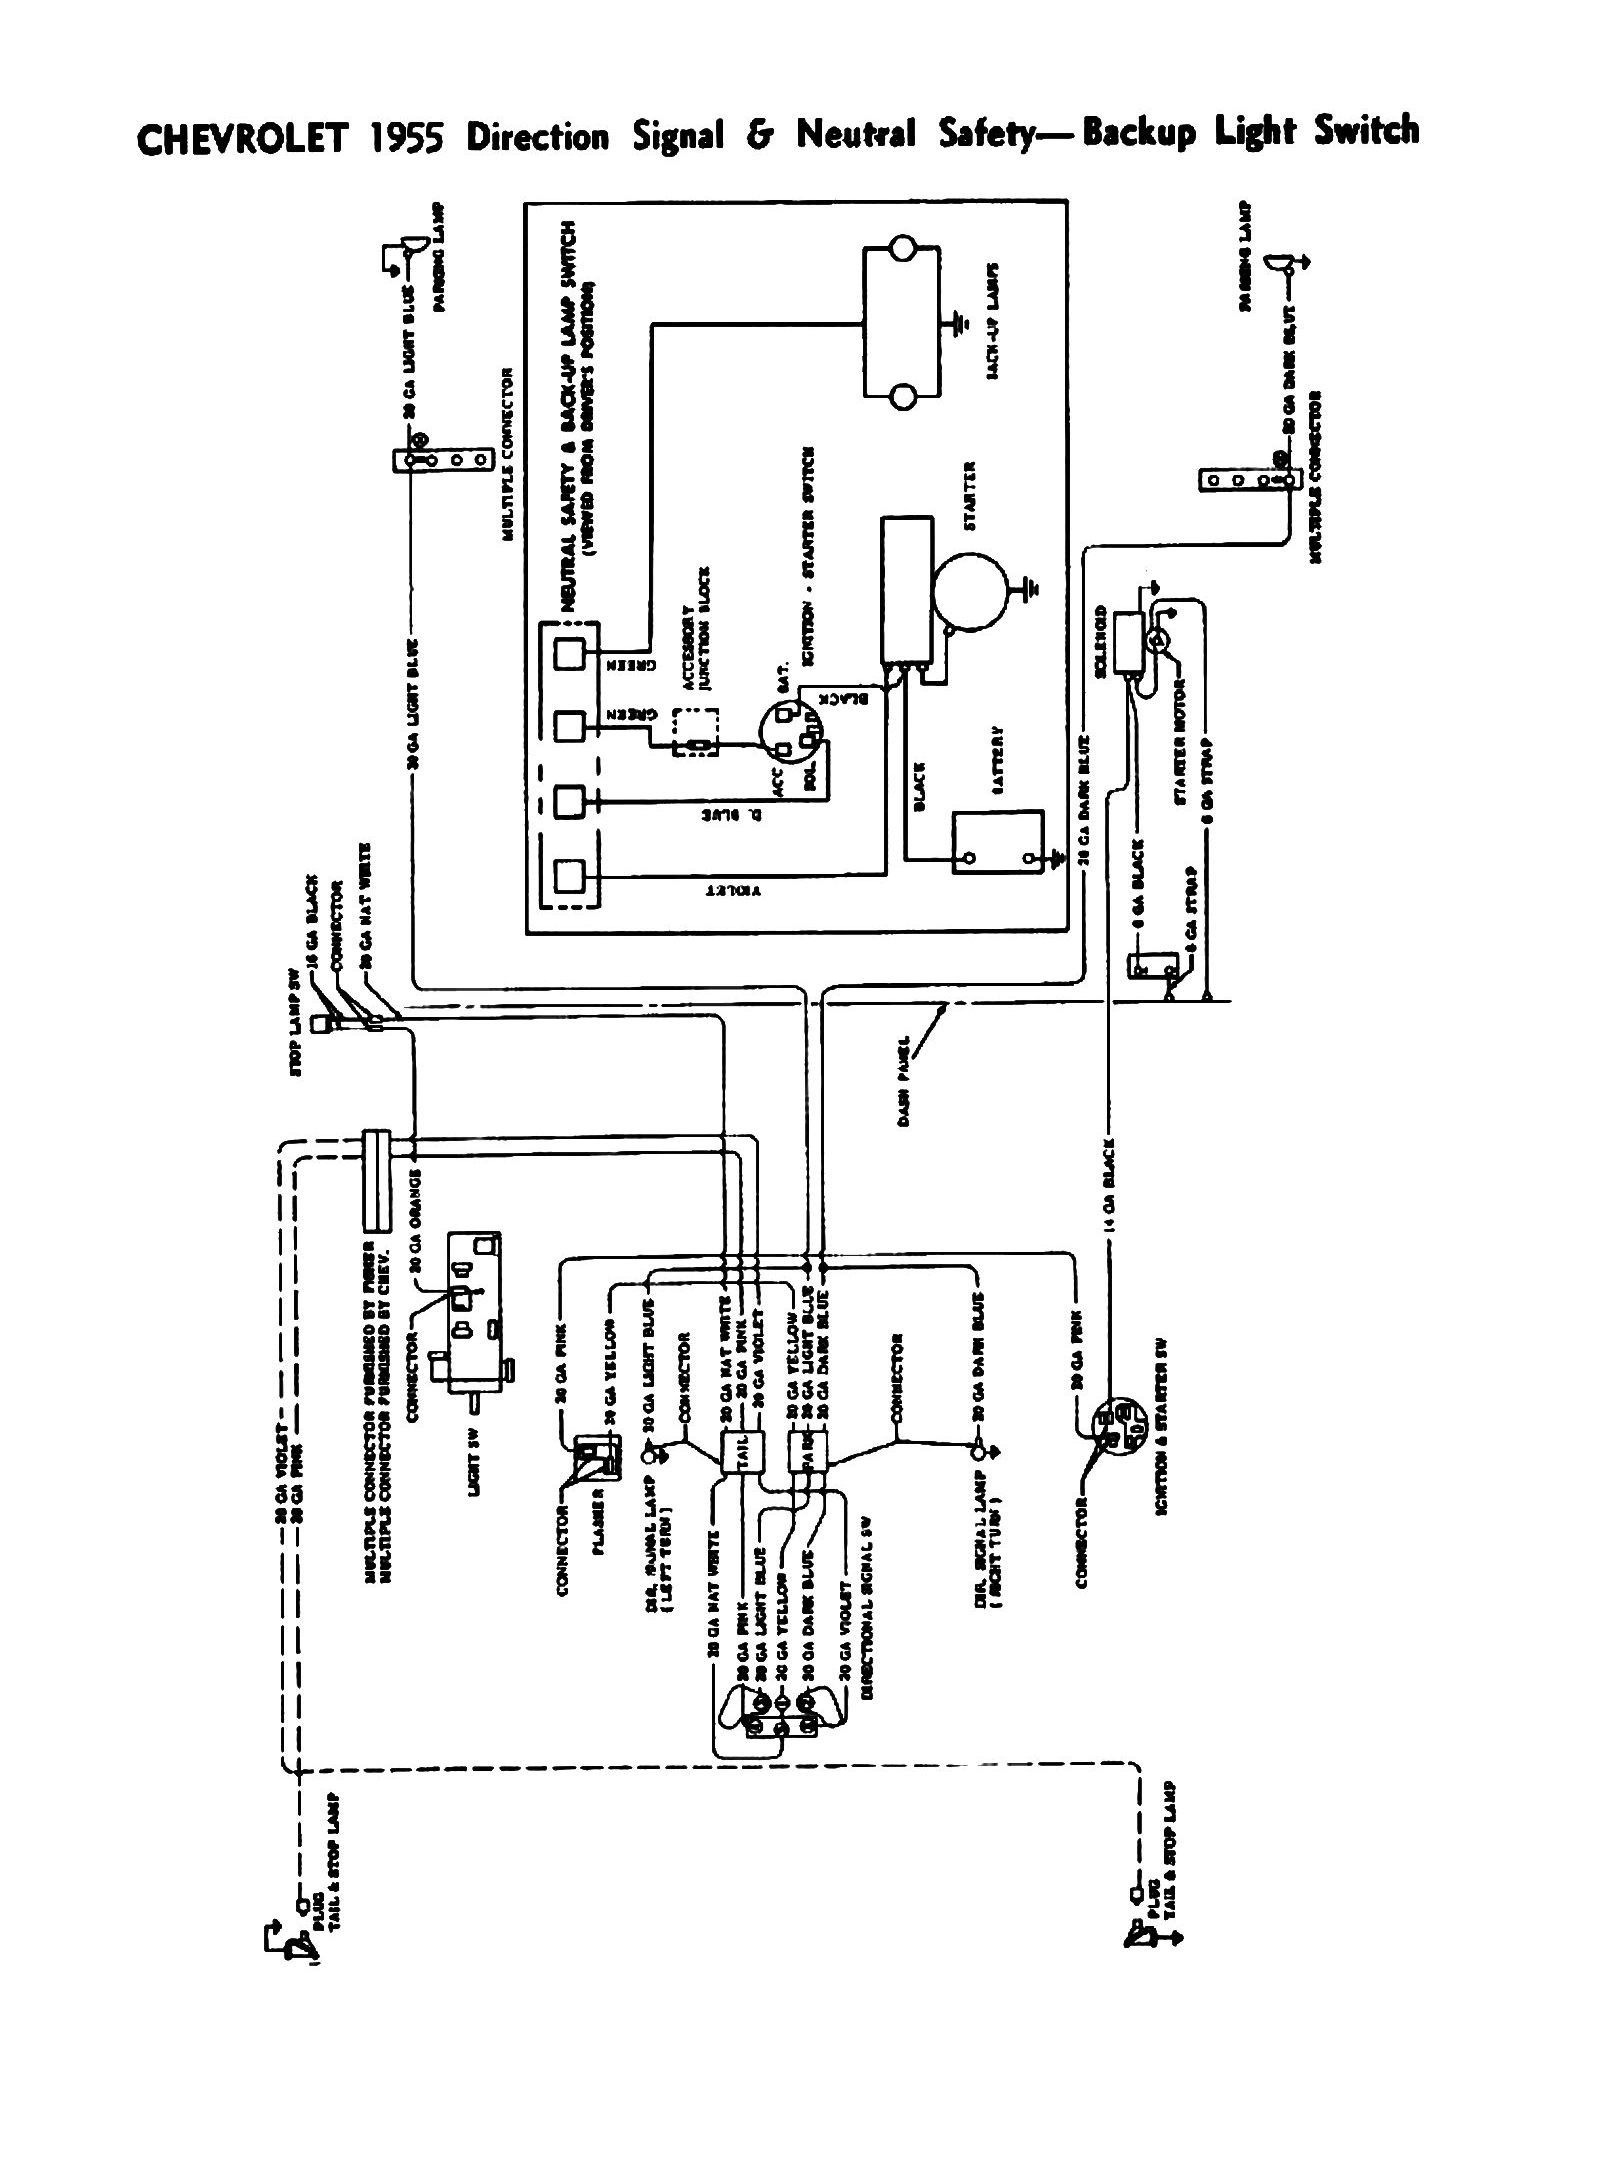 chevy 350 distributor wiring diagram for 55 chevy wiring diagram rh zigorat co  55 chevy ignition wiring